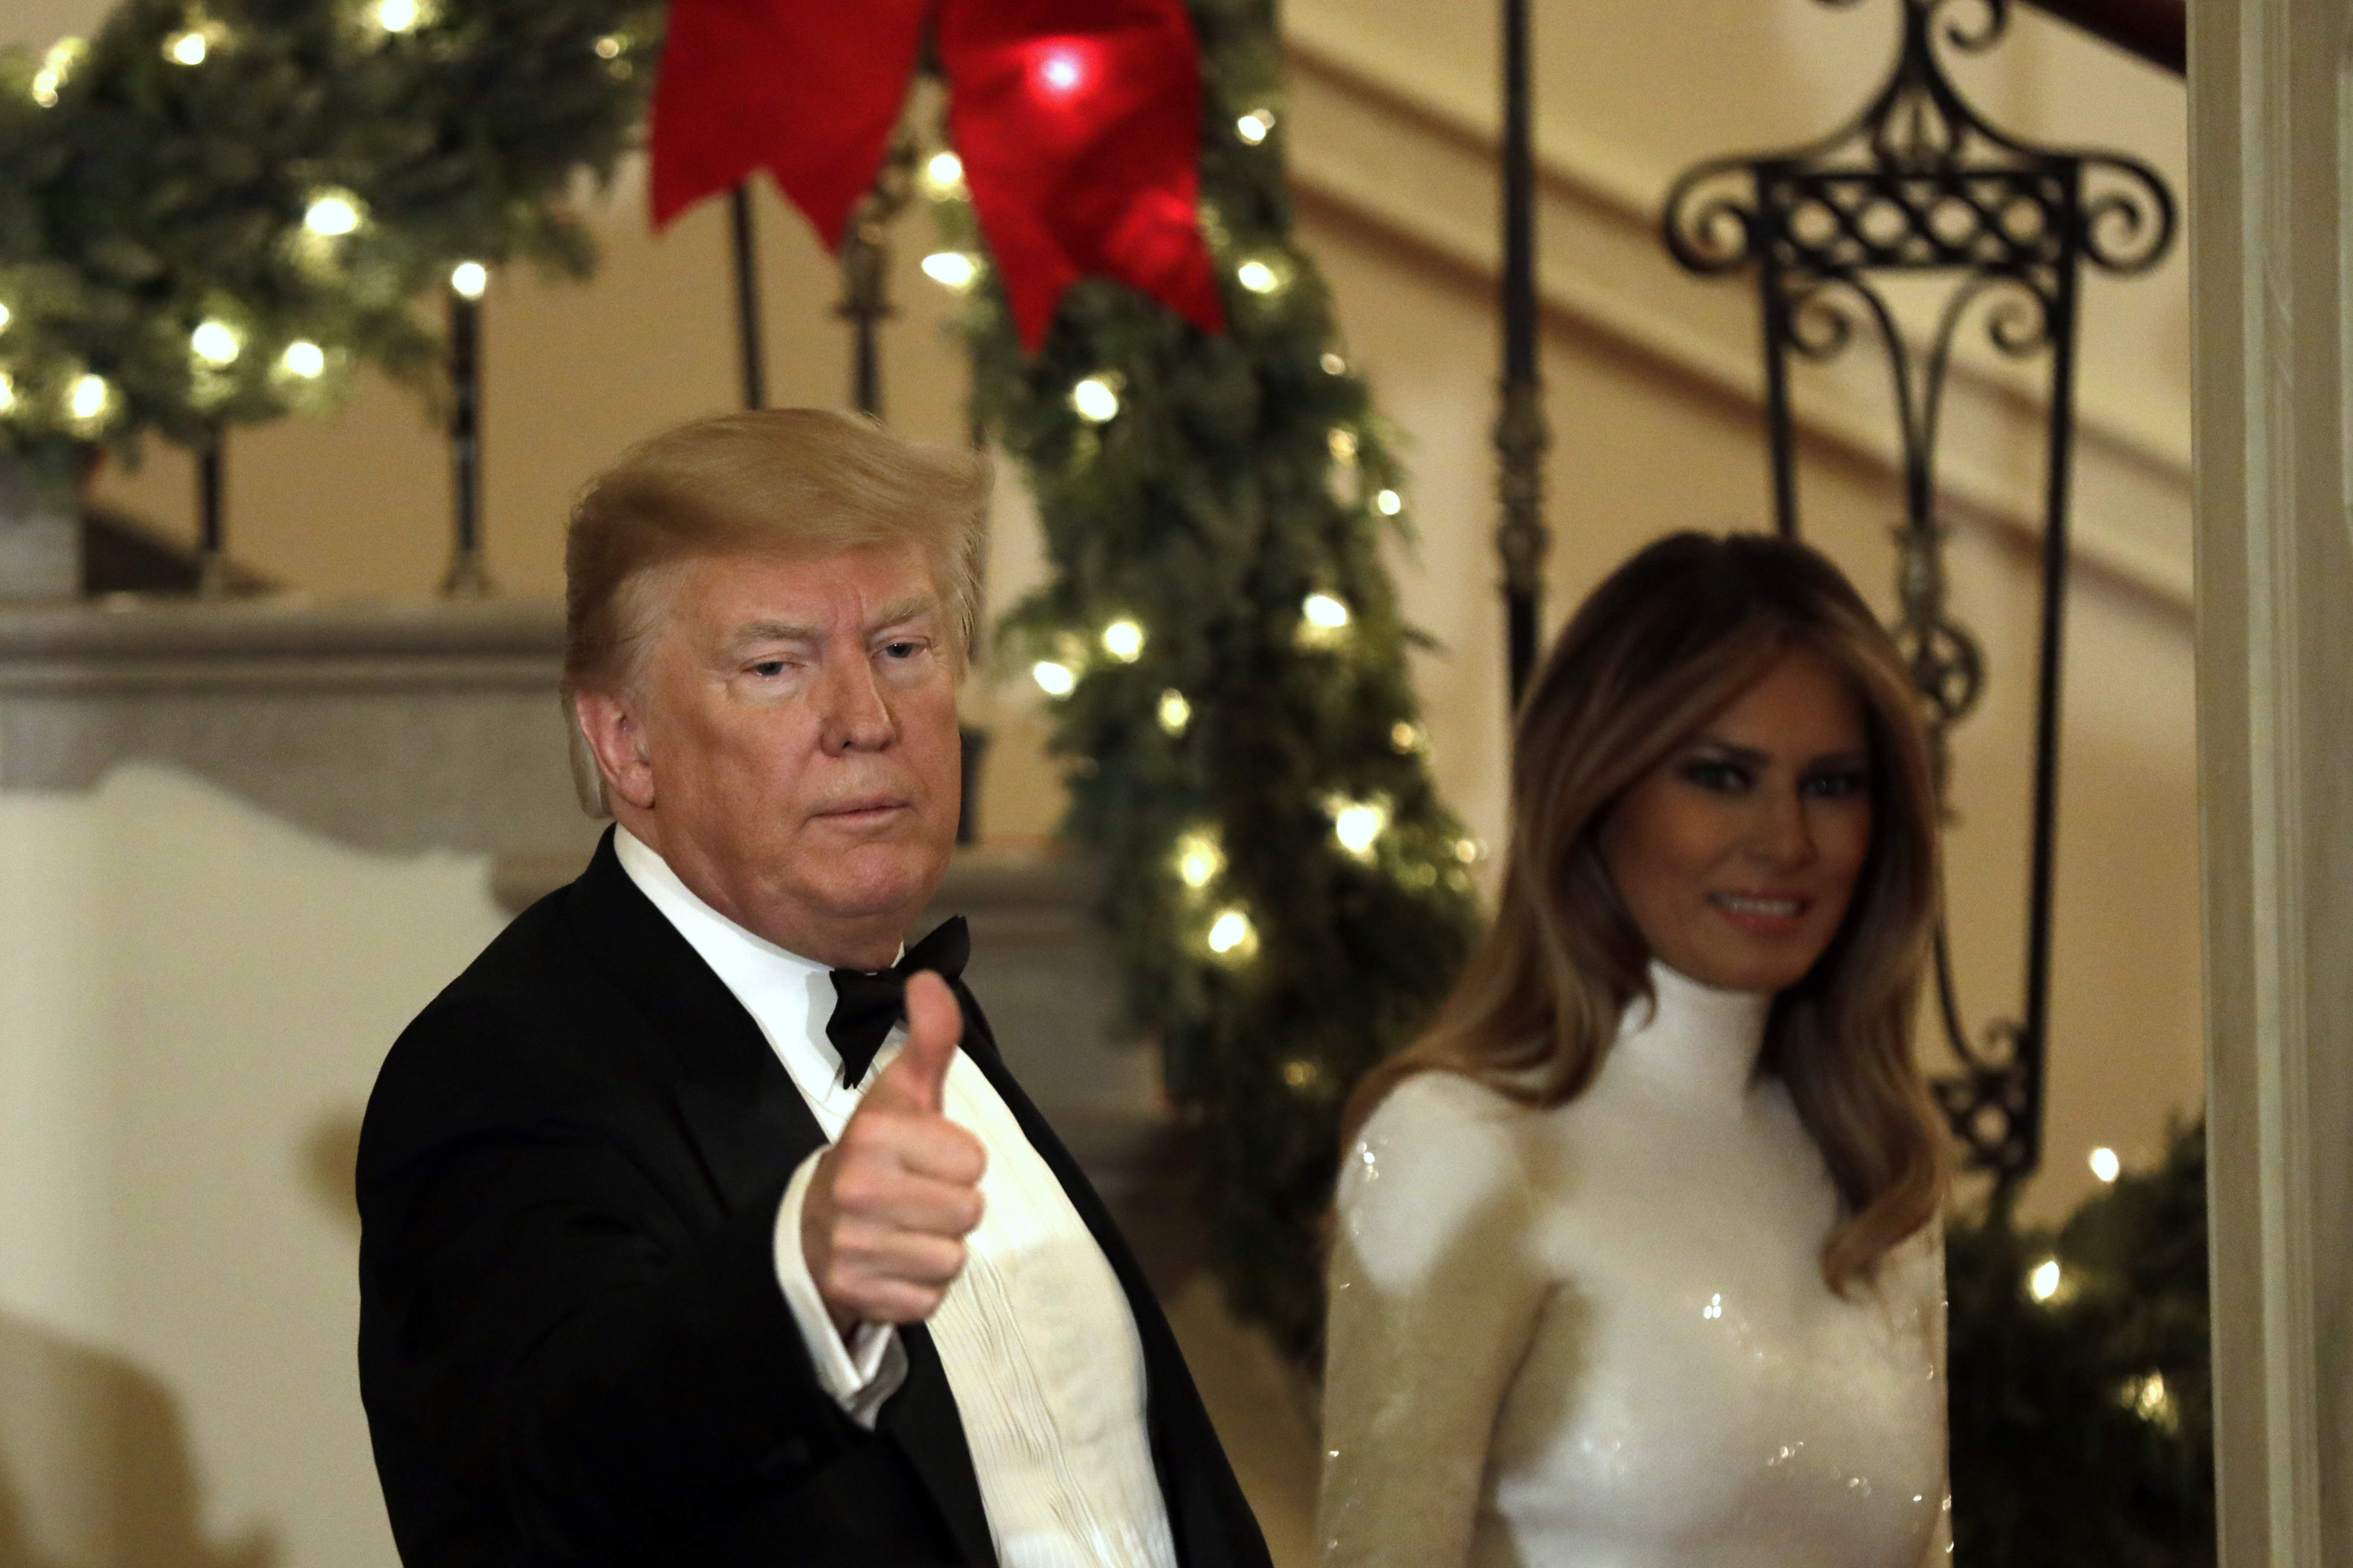 WASHINGTON, DC - DECEMBER 15: U.S. President Donald Trump and First Lady Melania Trump greet guests at the Congressional Ball at White House in Washington on December 15, 2018. (Photo by Yuri Gripas-Pool/Getty Images)